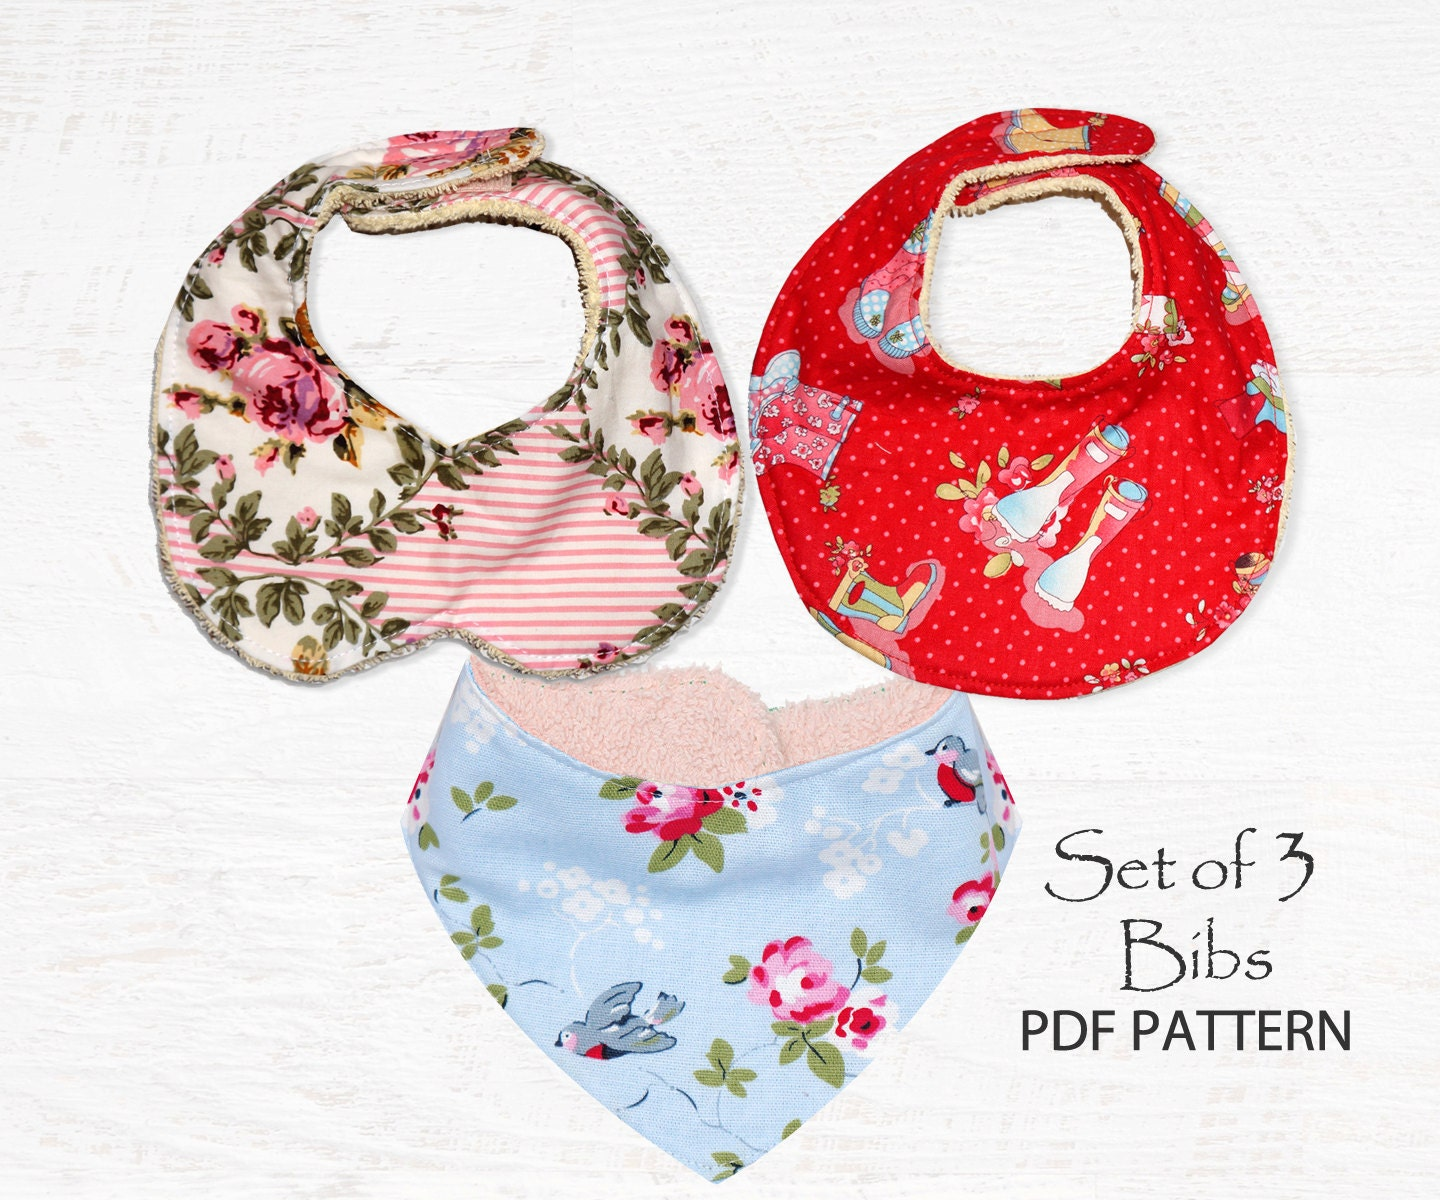 Baby Sewing Pattern For Bibs Pdf Sewing Pattern Bandana Bib